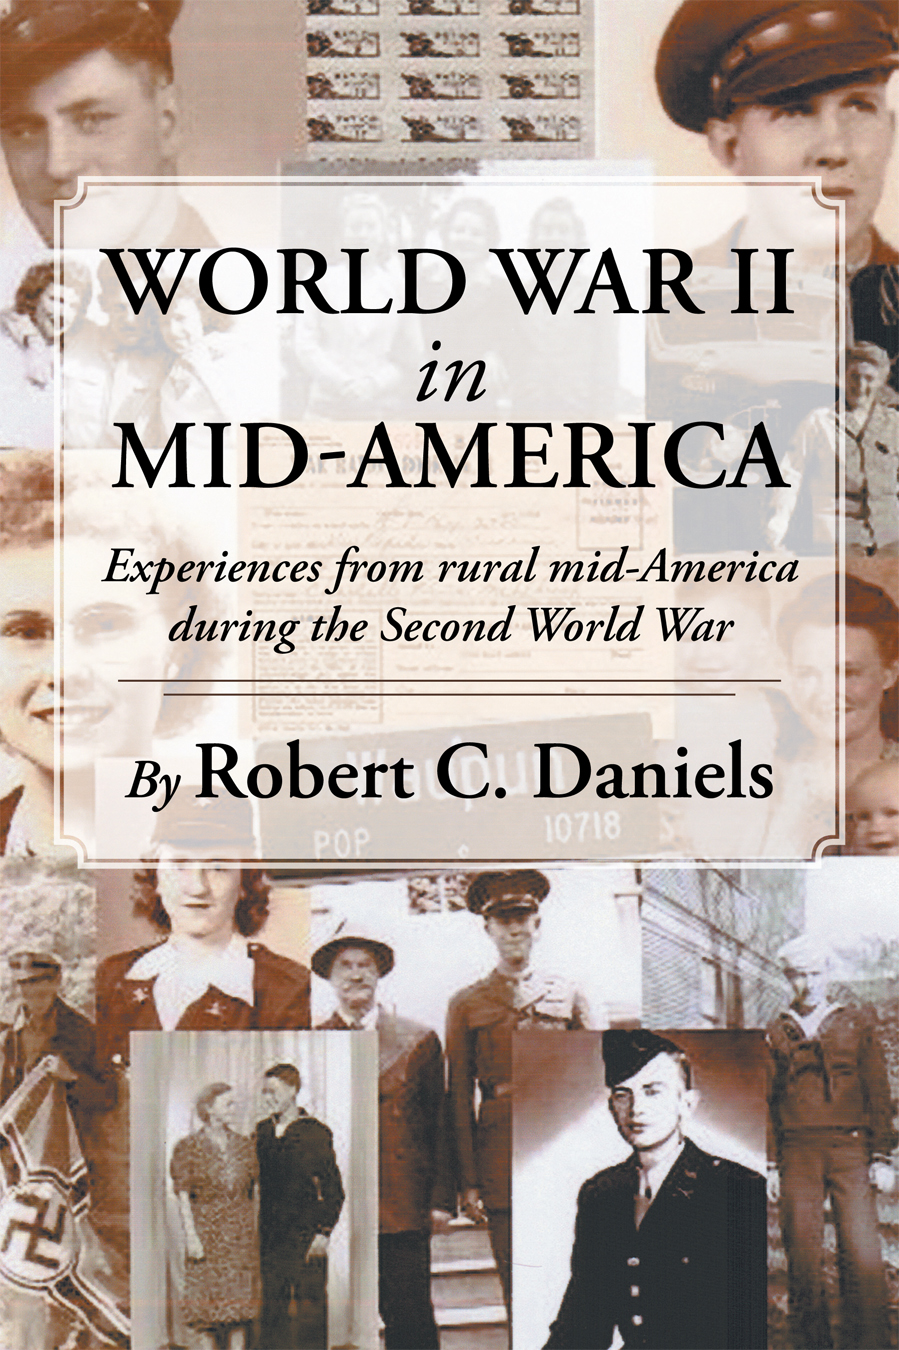 World War II in Mid-America